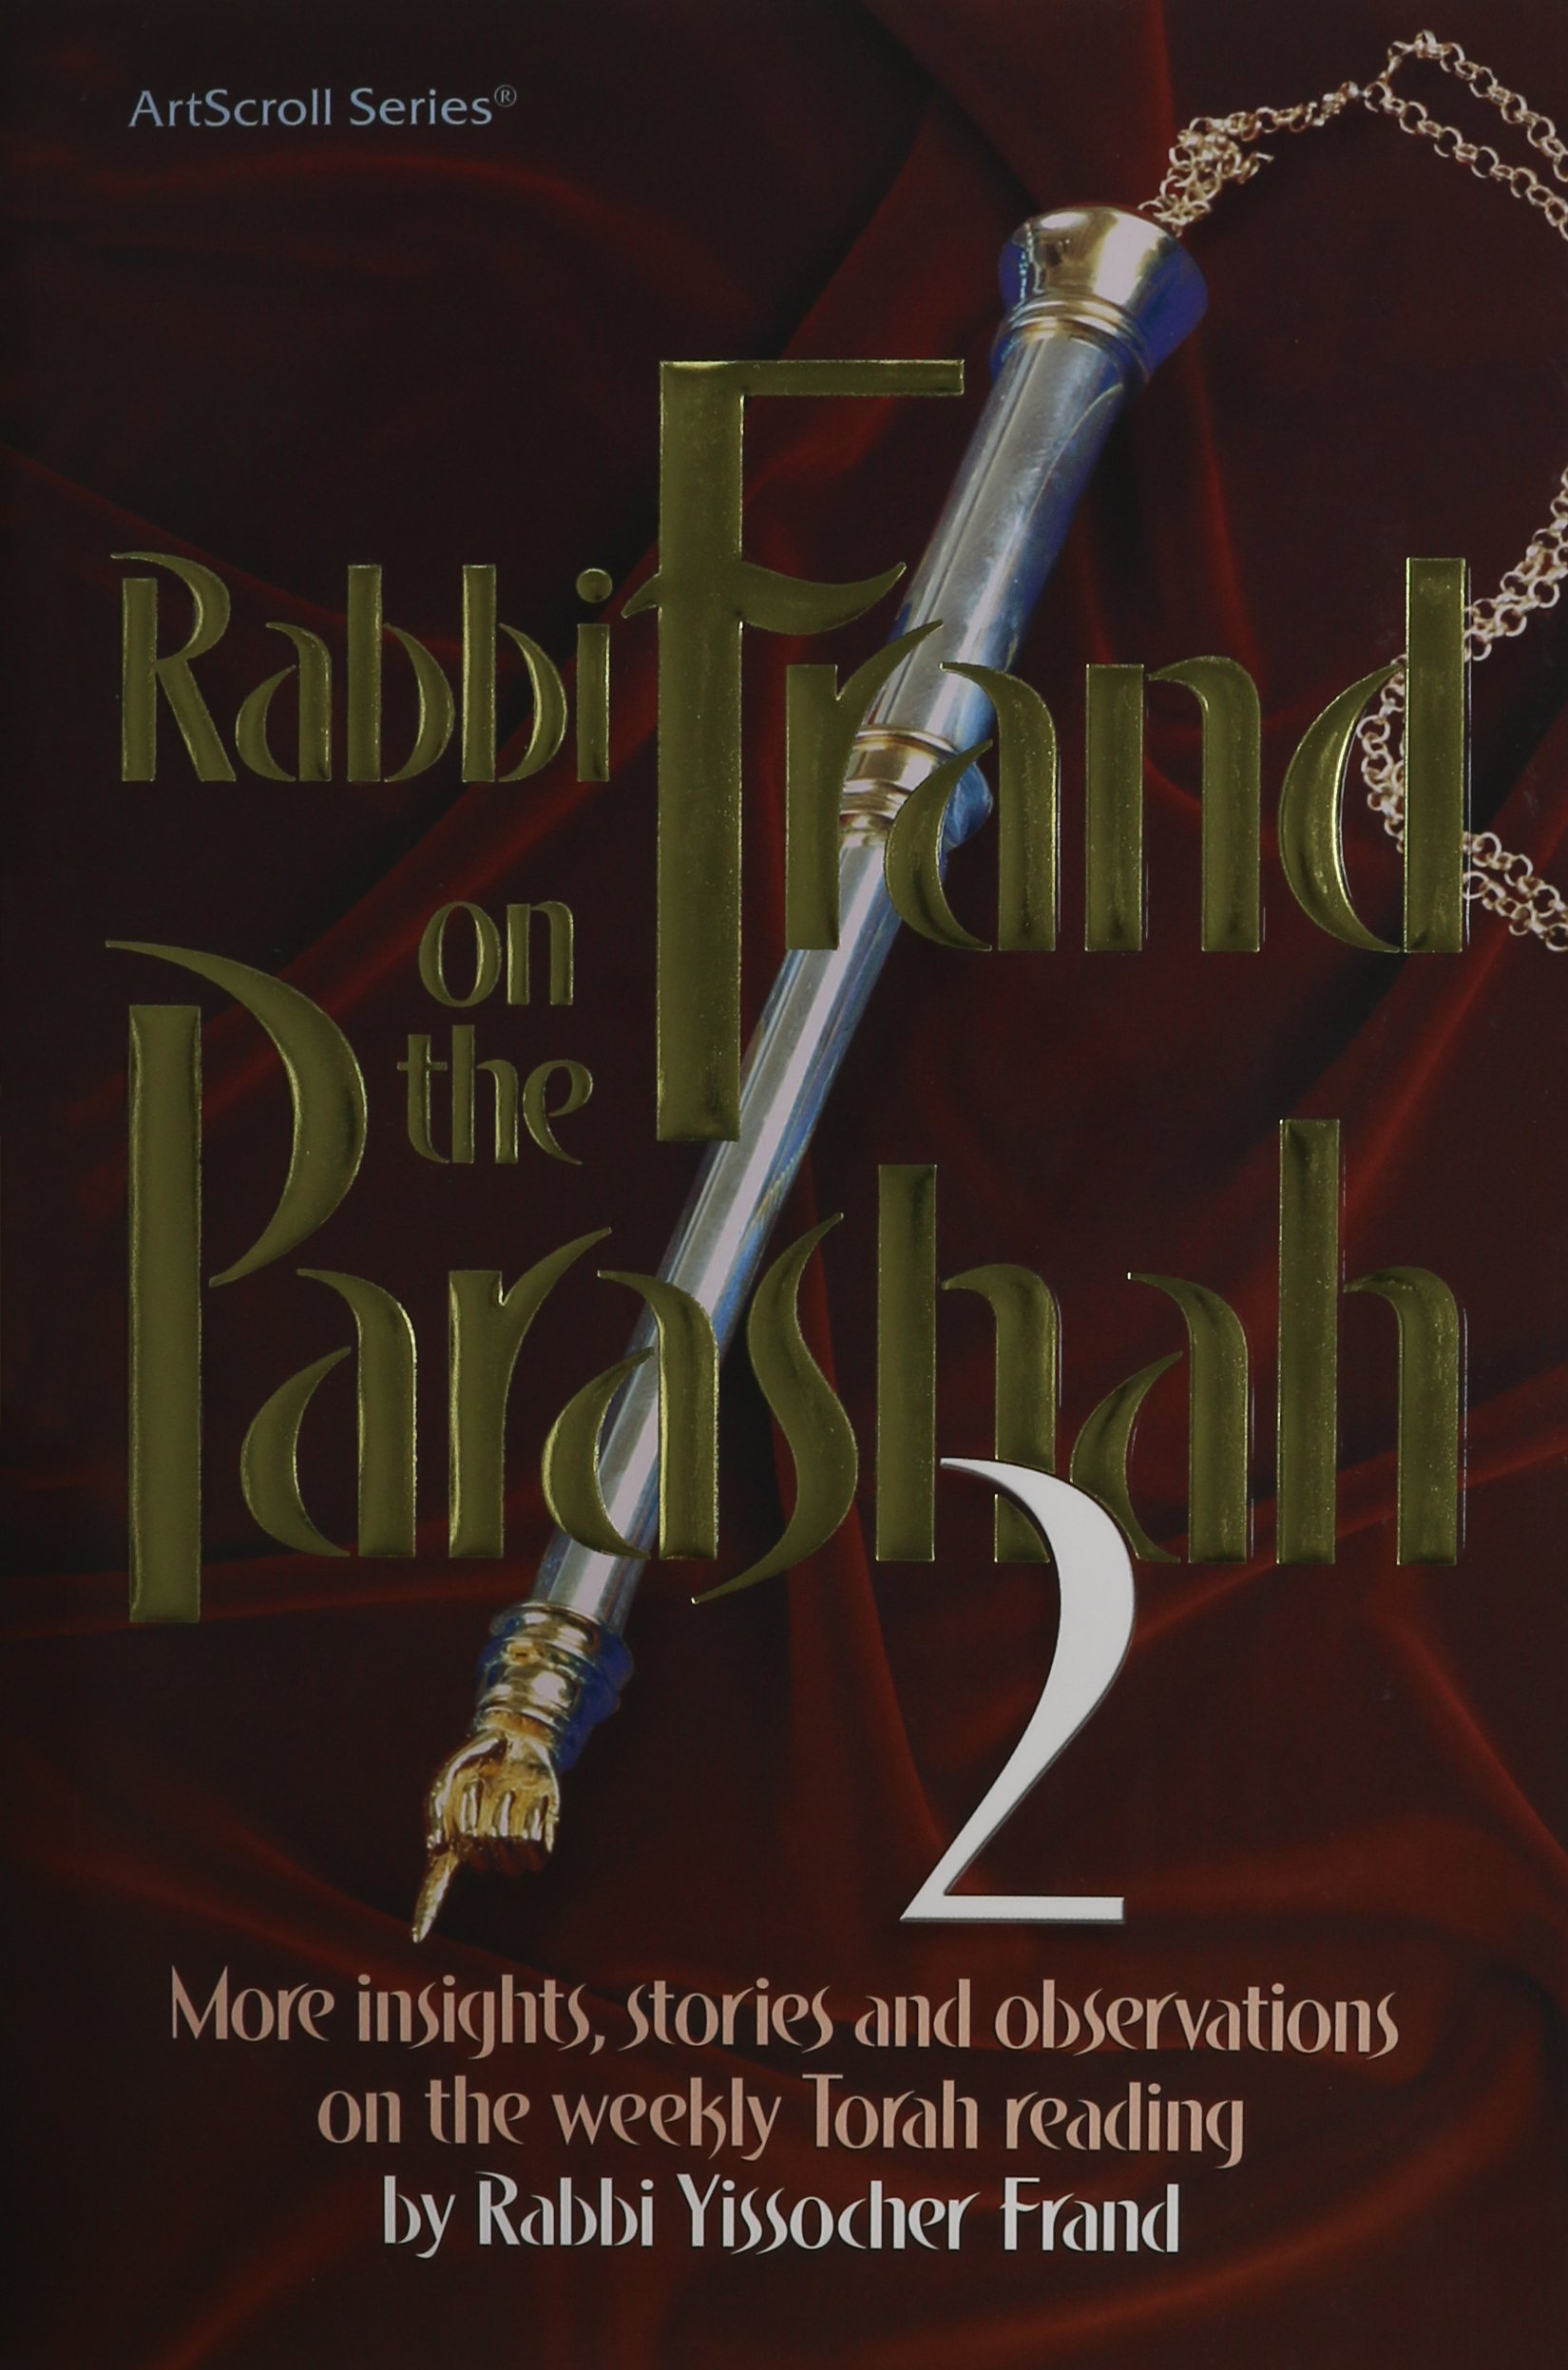 Rabbi Frand on the Parashah: Insights, Stories, and Observations by Rabbi Yissocher Frand on the Weekly Torah Reading pdf